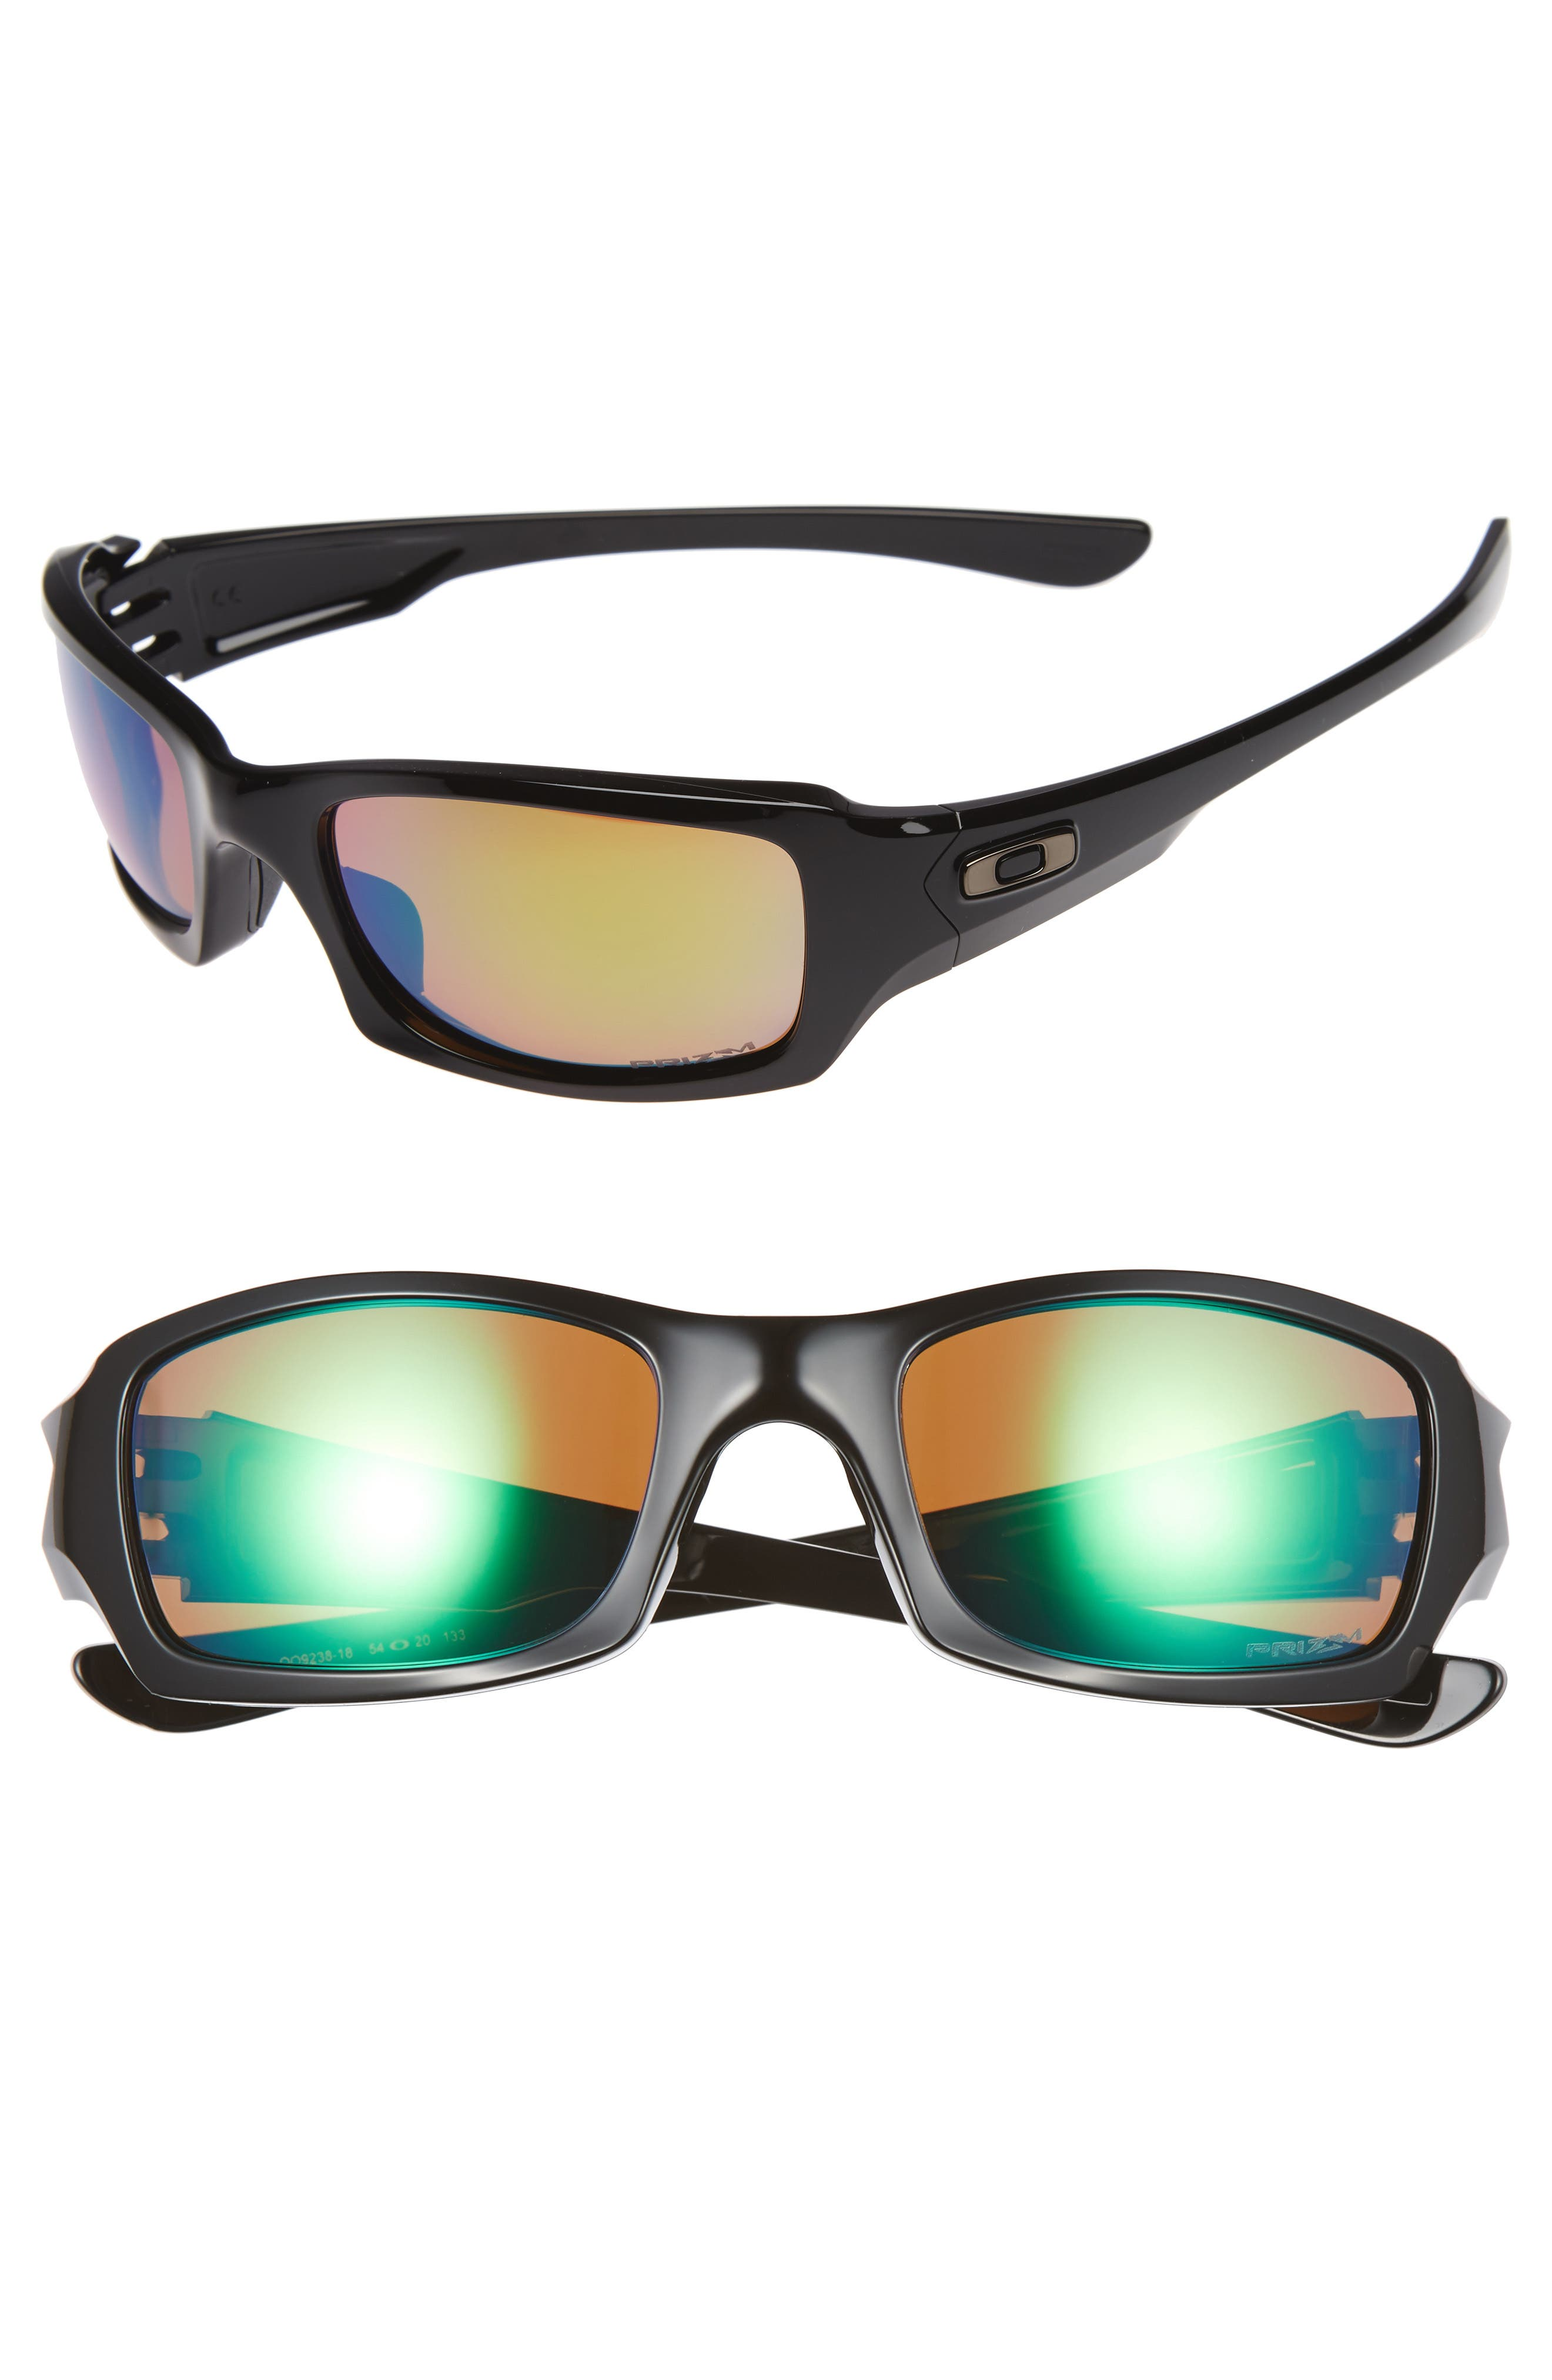 Oakley Fives Squared H2O 5m Polarized Sunglasses -